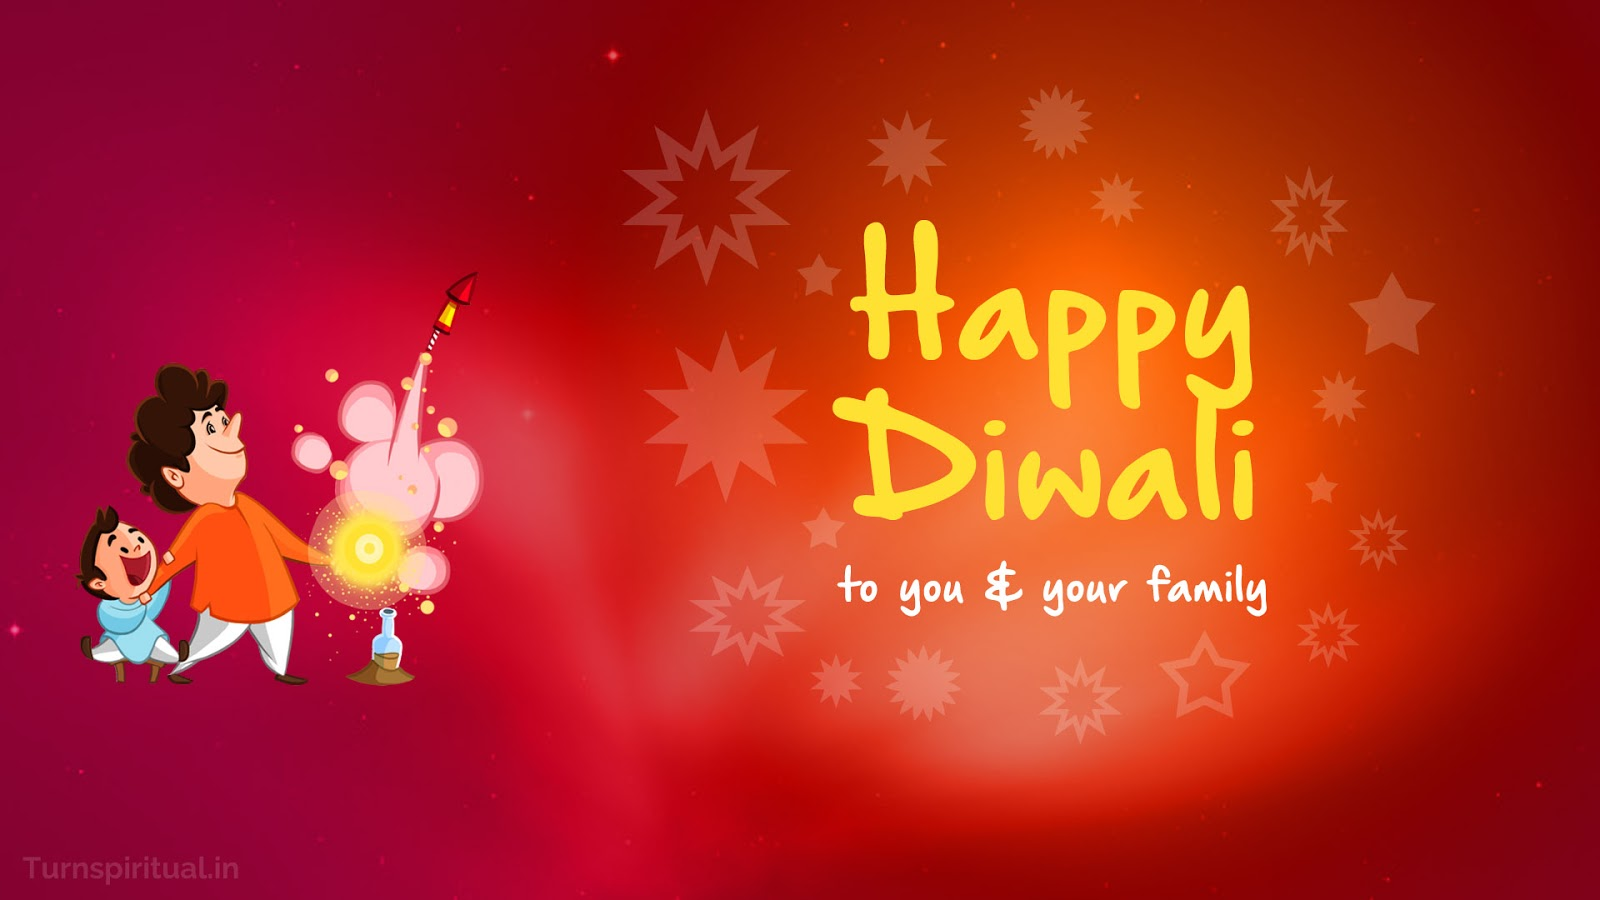 Happy Diwali Wallpapers With Crackers Fabulous Happy Diwali Hd